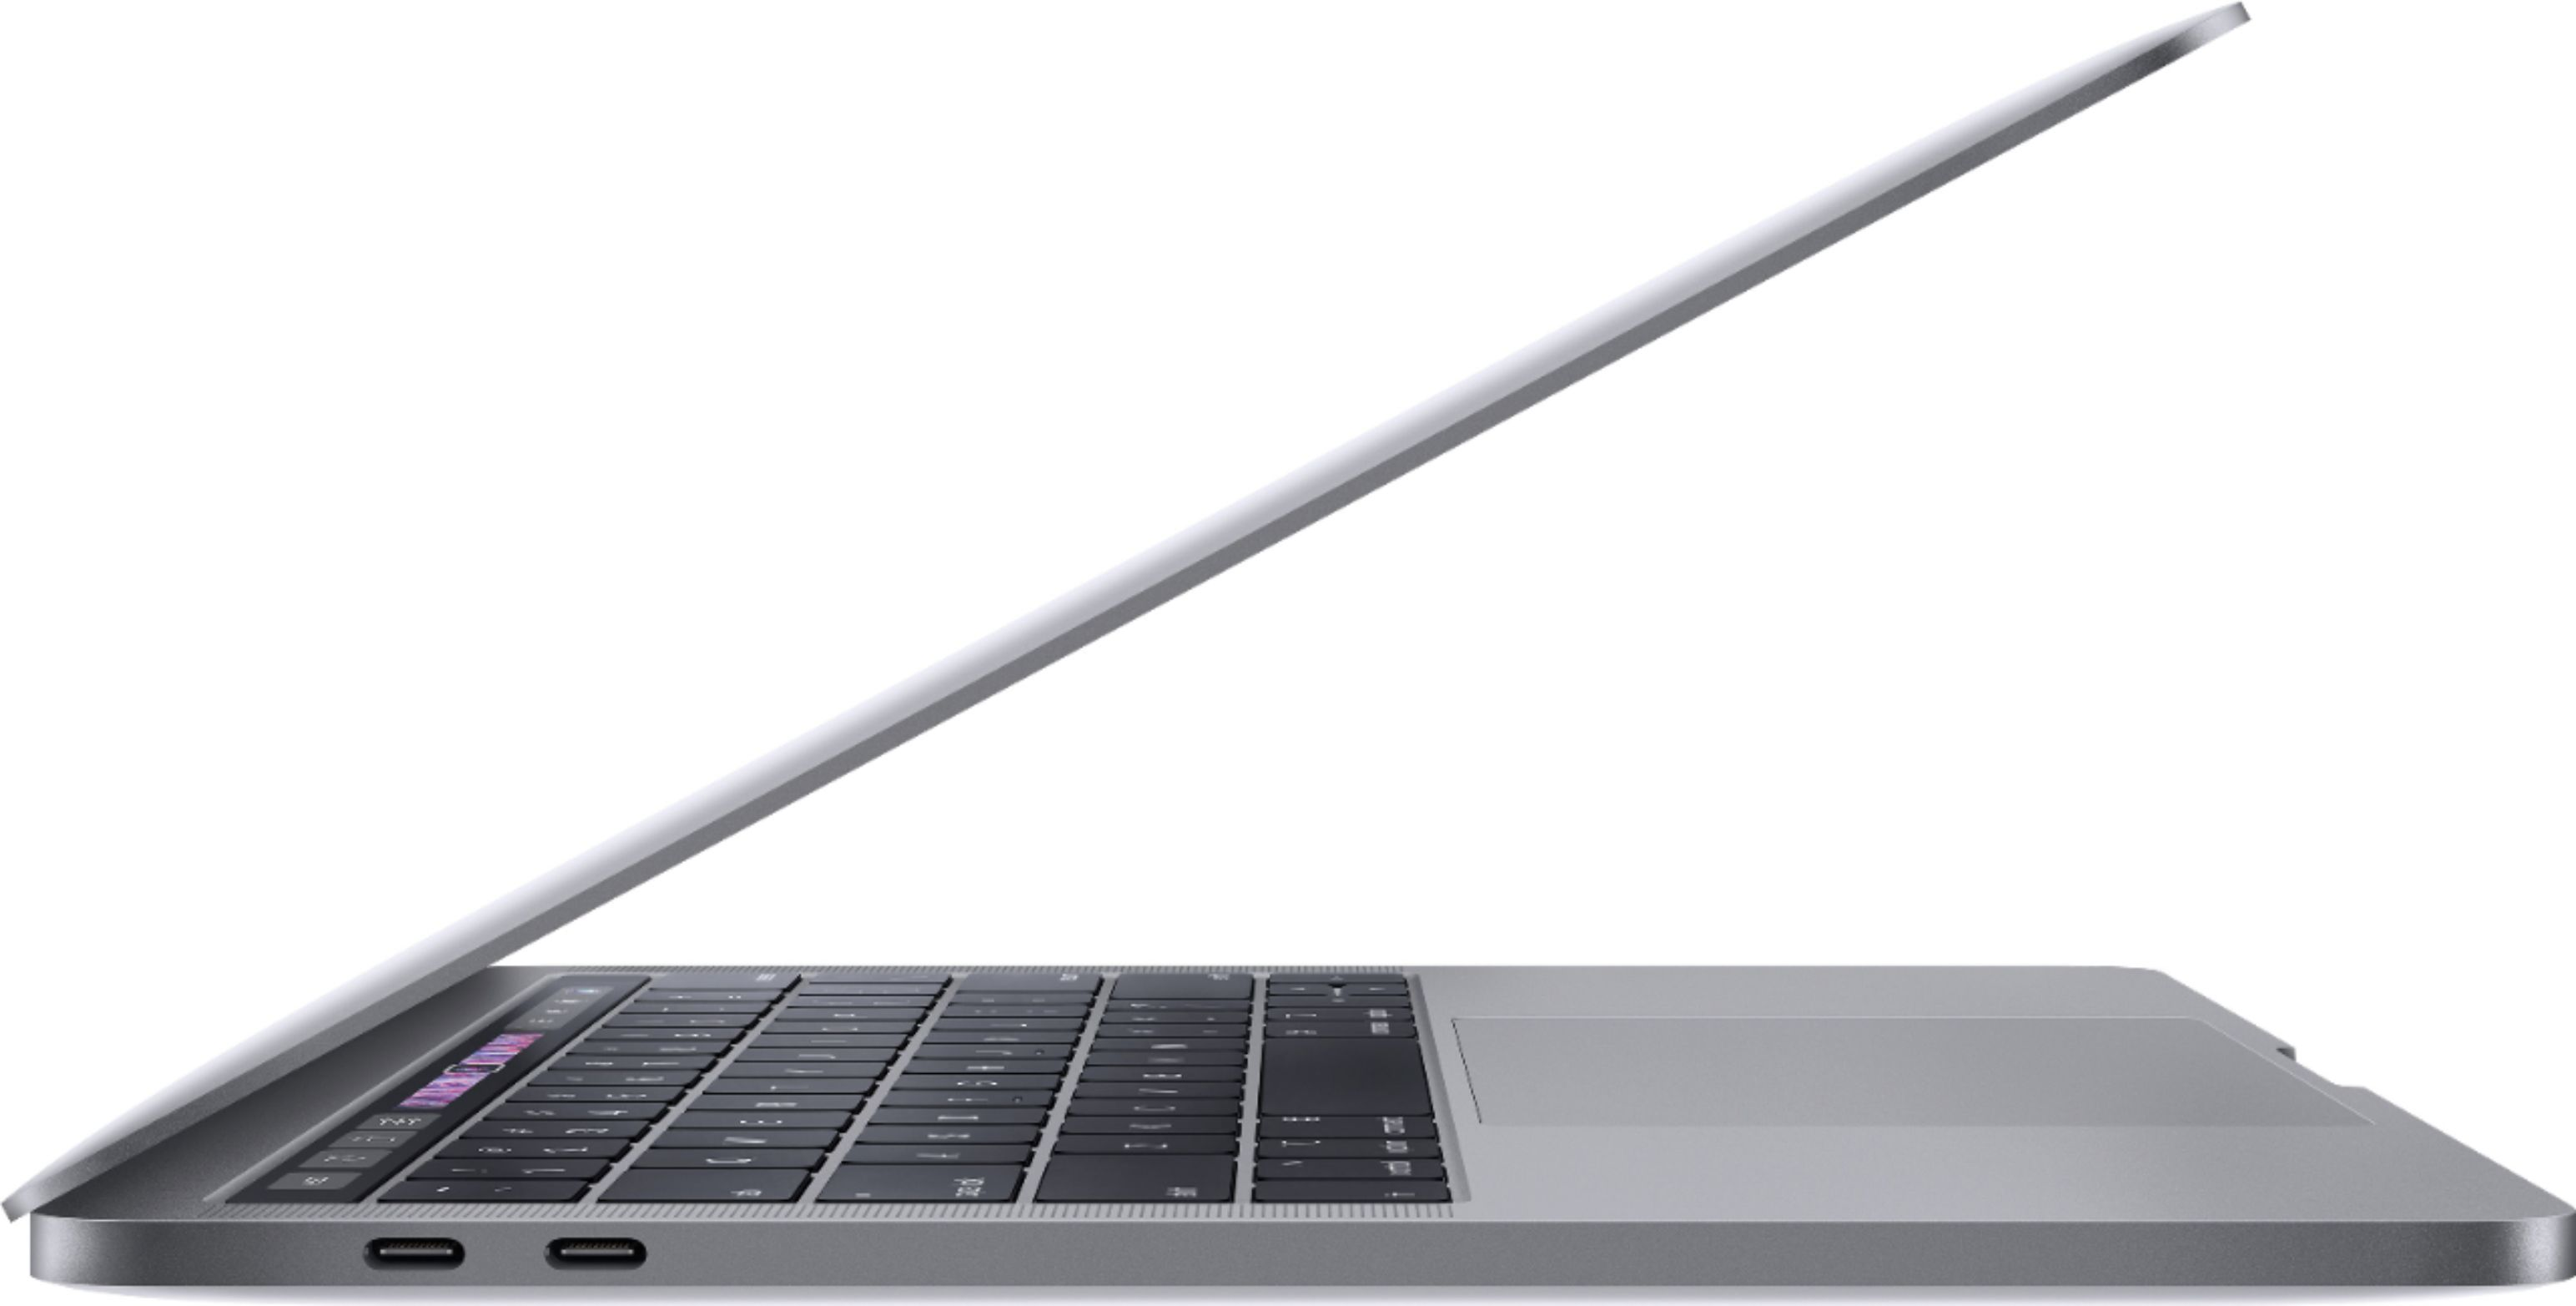 """Alt View Zoom 11. Apple - Geek Squad Certified Refurbished MacBook Pro - 13"""" Display with Touch Bar - Intel Core i5 - 8GB Memory - 128GB SSD - Space Gray."""